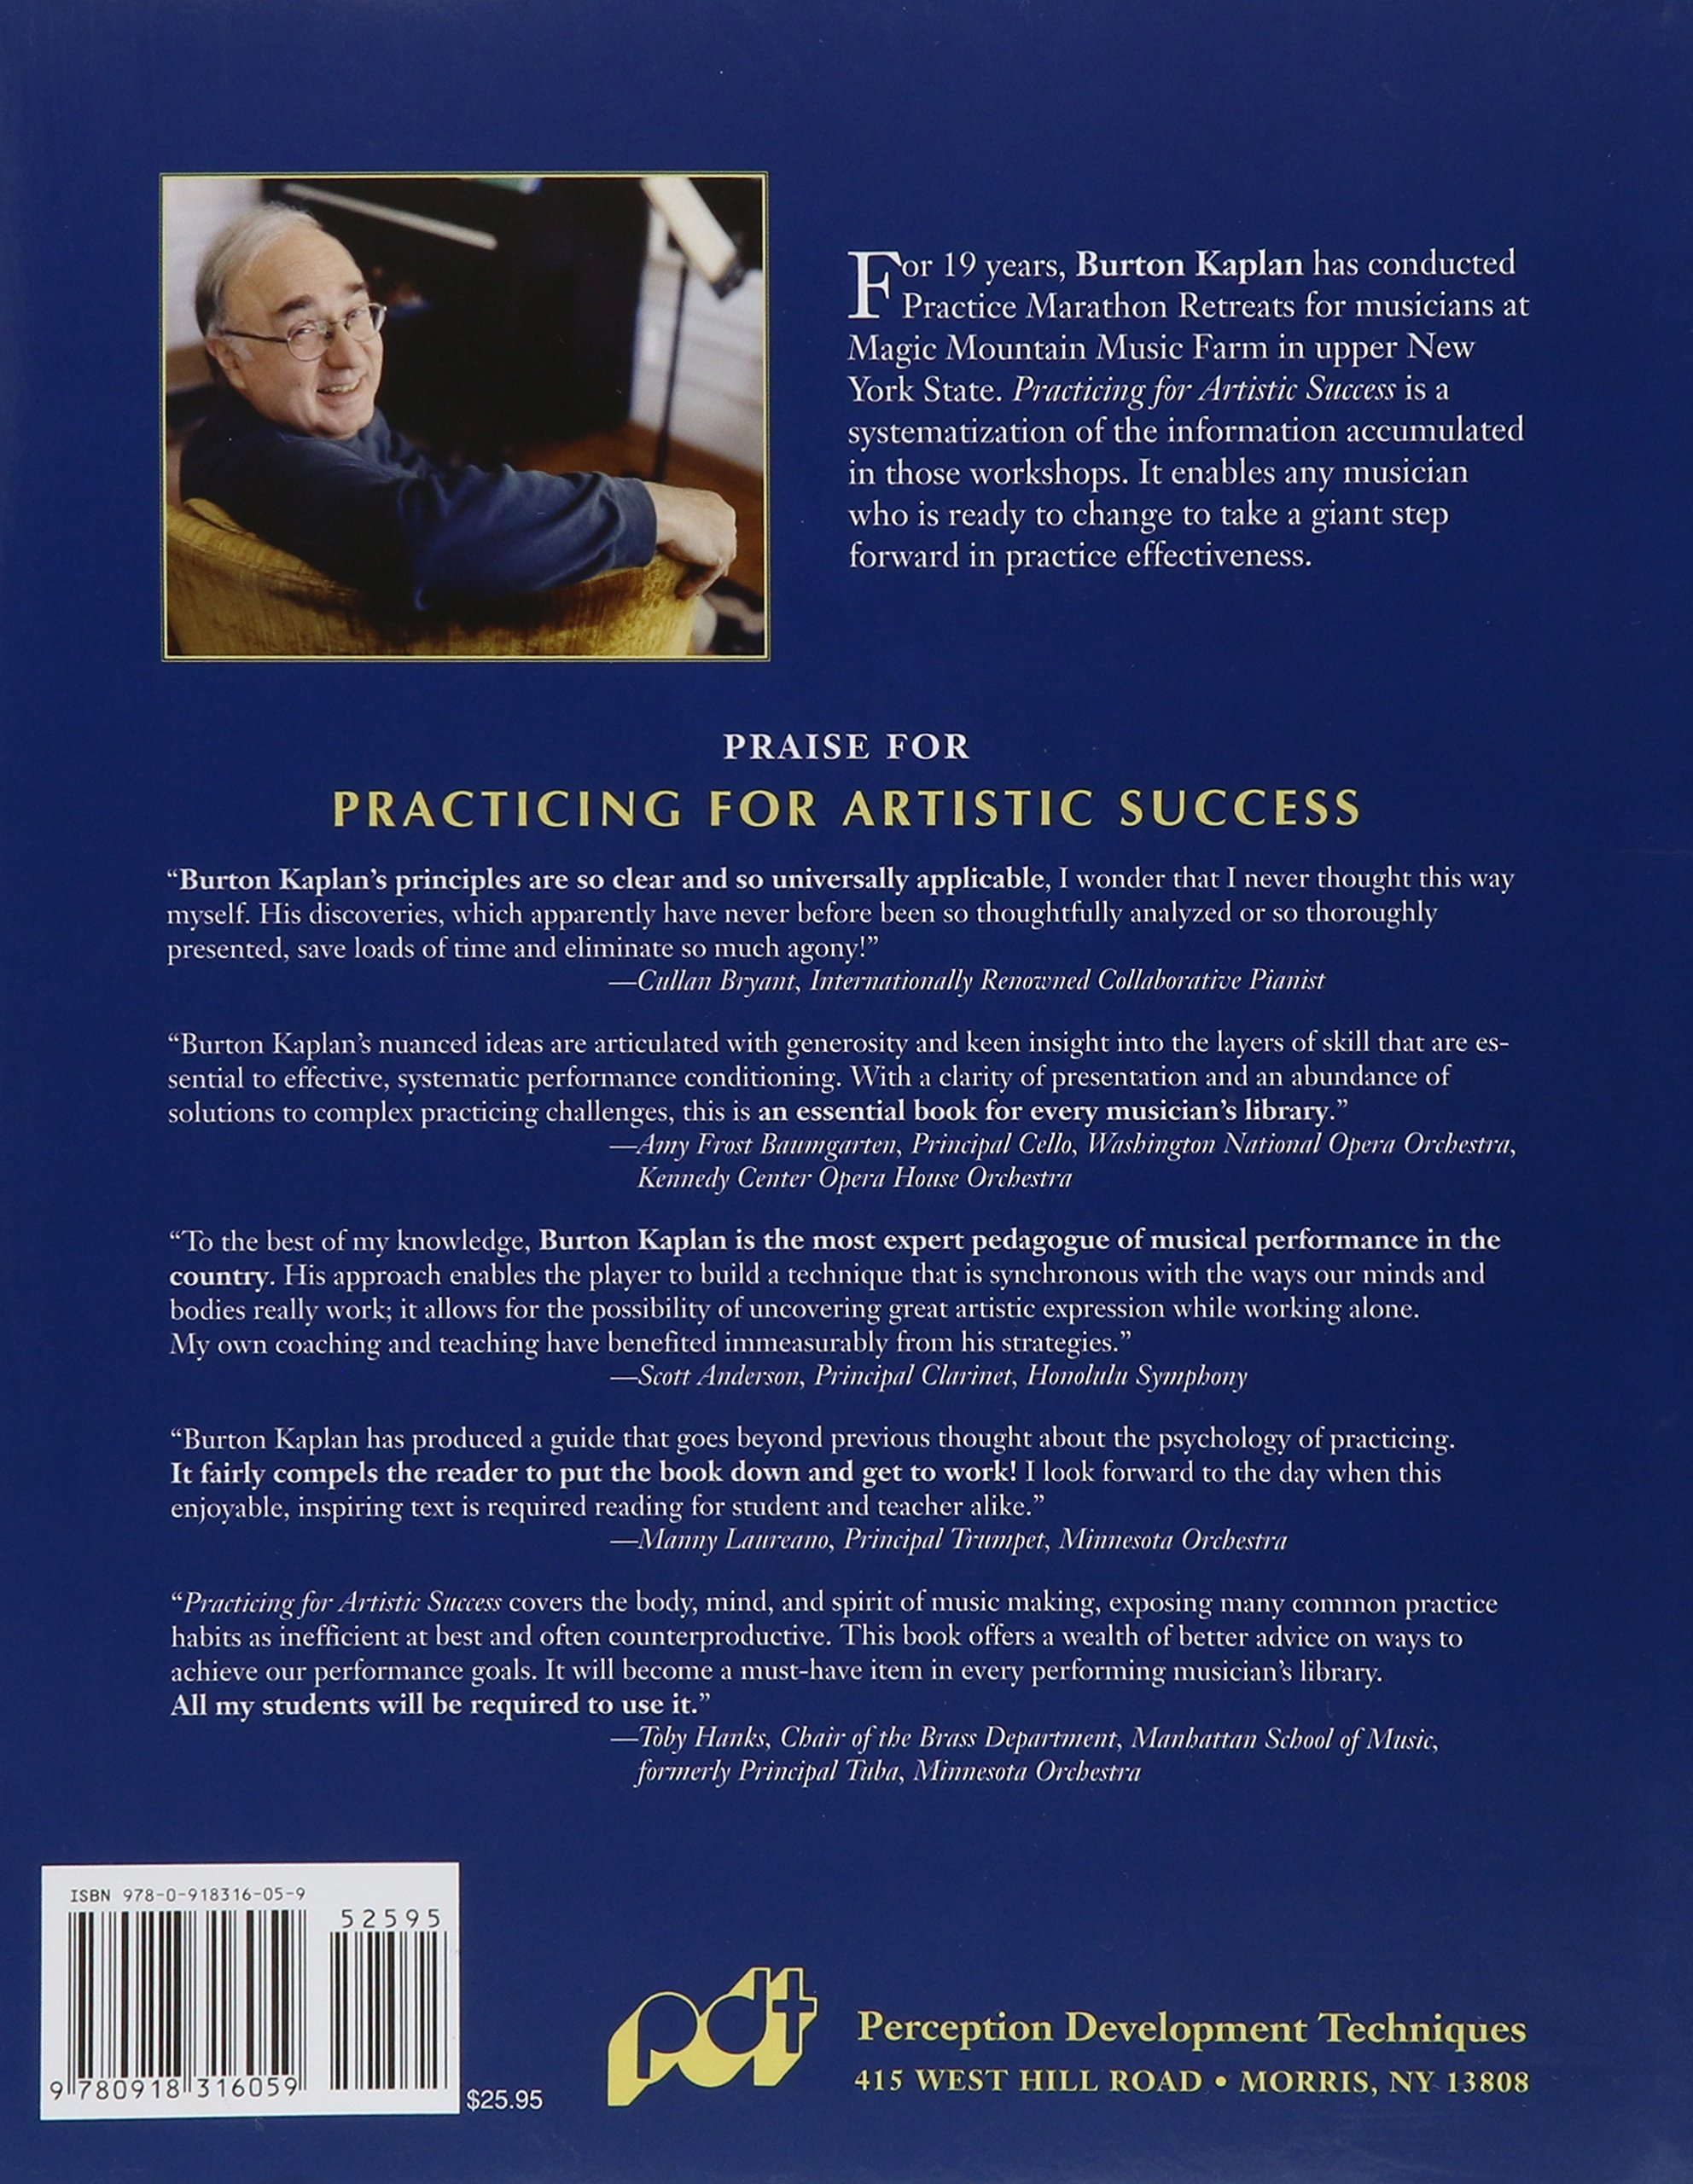 Practicing For Artistic Success: The Musician's Guide To Selfempowerment  (vol I): Burton Kaplan: 9780918316059: Amazon: Books